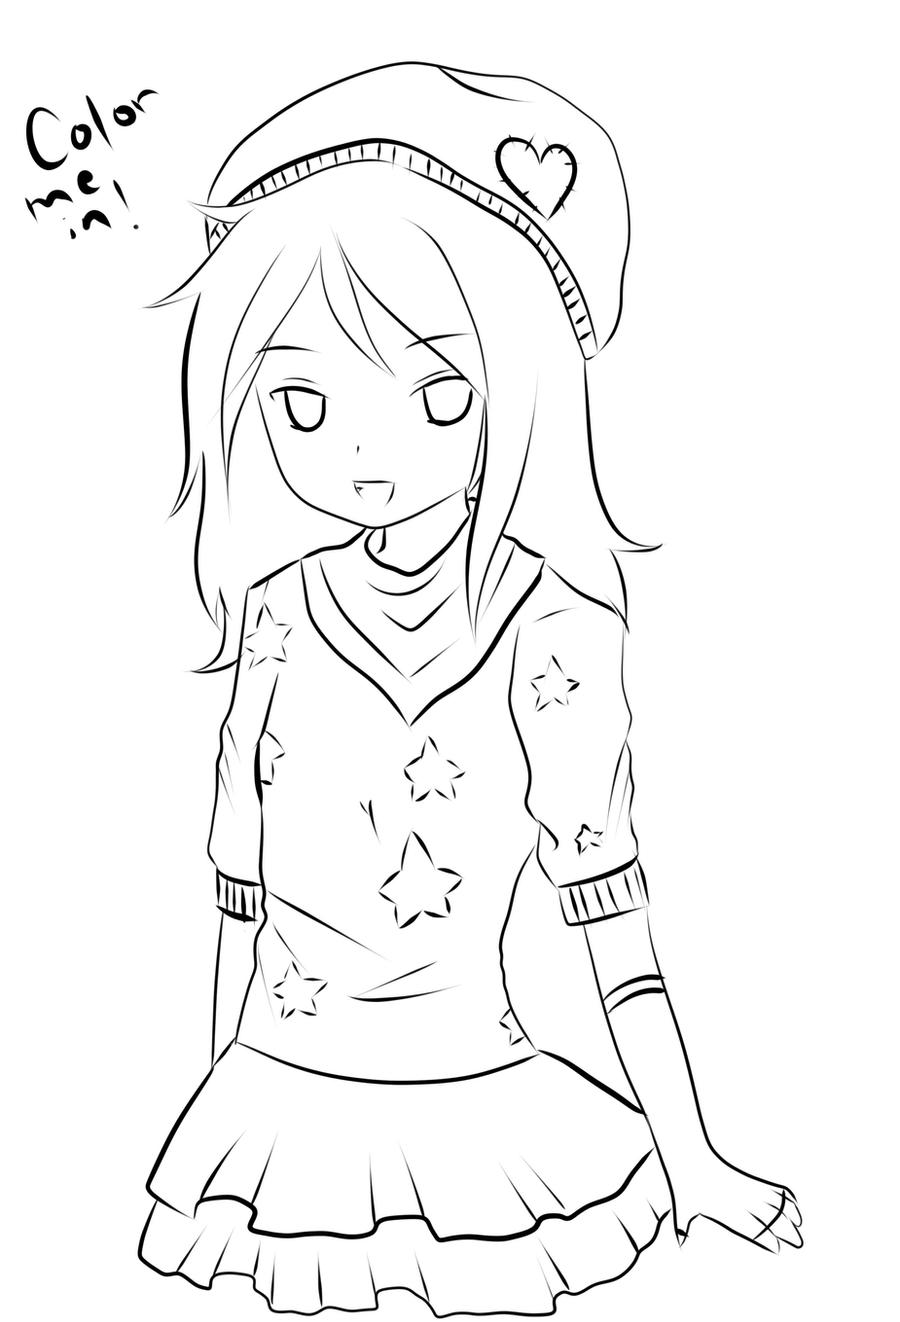 Anime girl coloring page by creampuffchan on DeviantArt